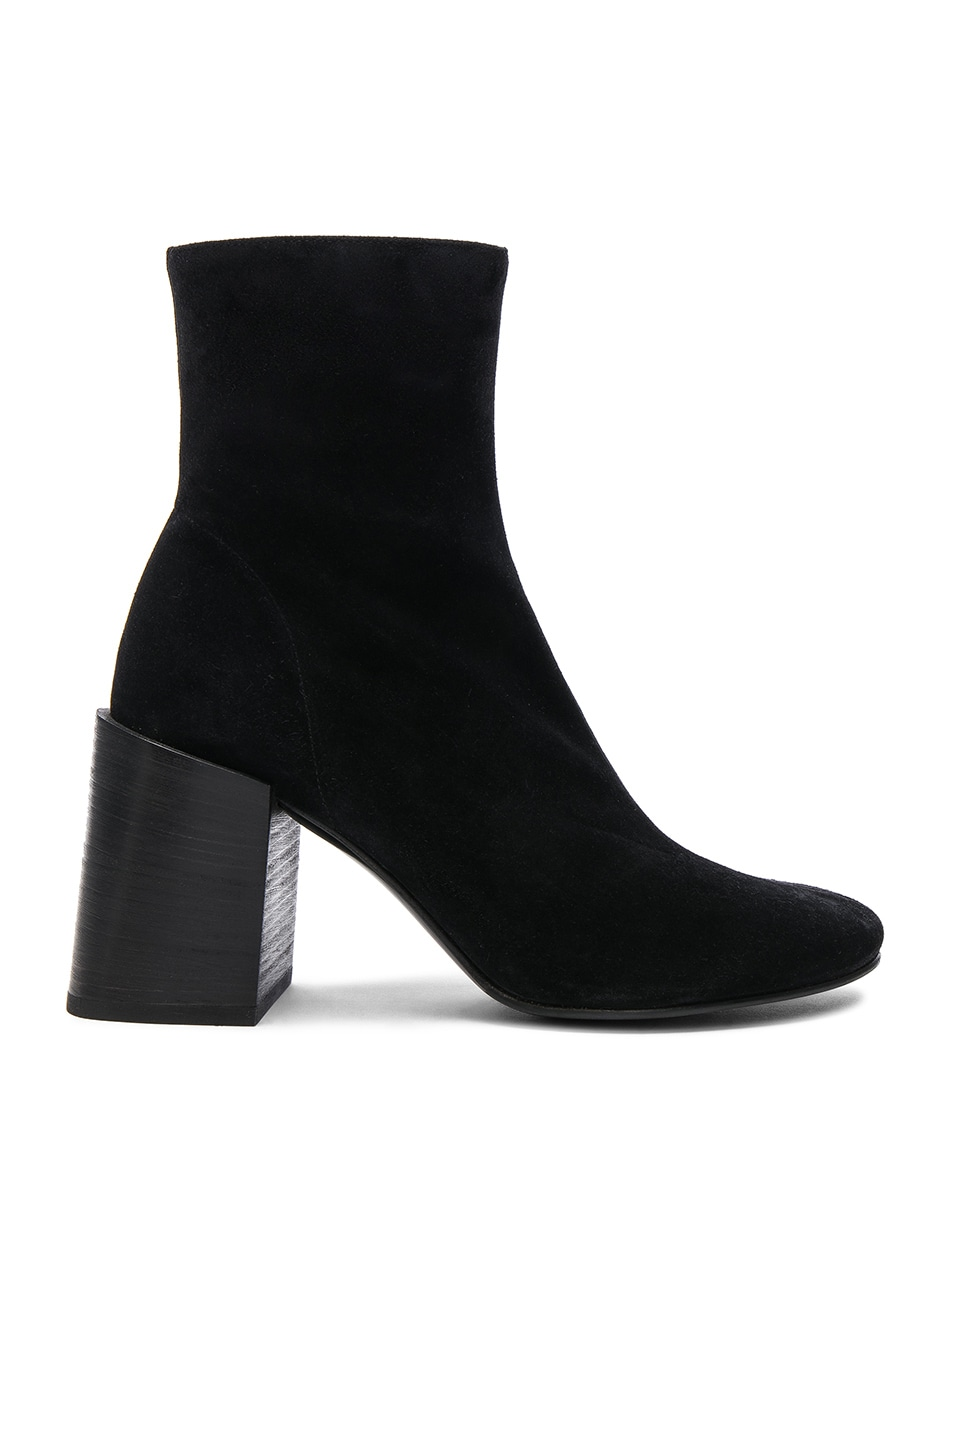 Image 1 of Acne Studios Saul Reverse Leather Boots in Black